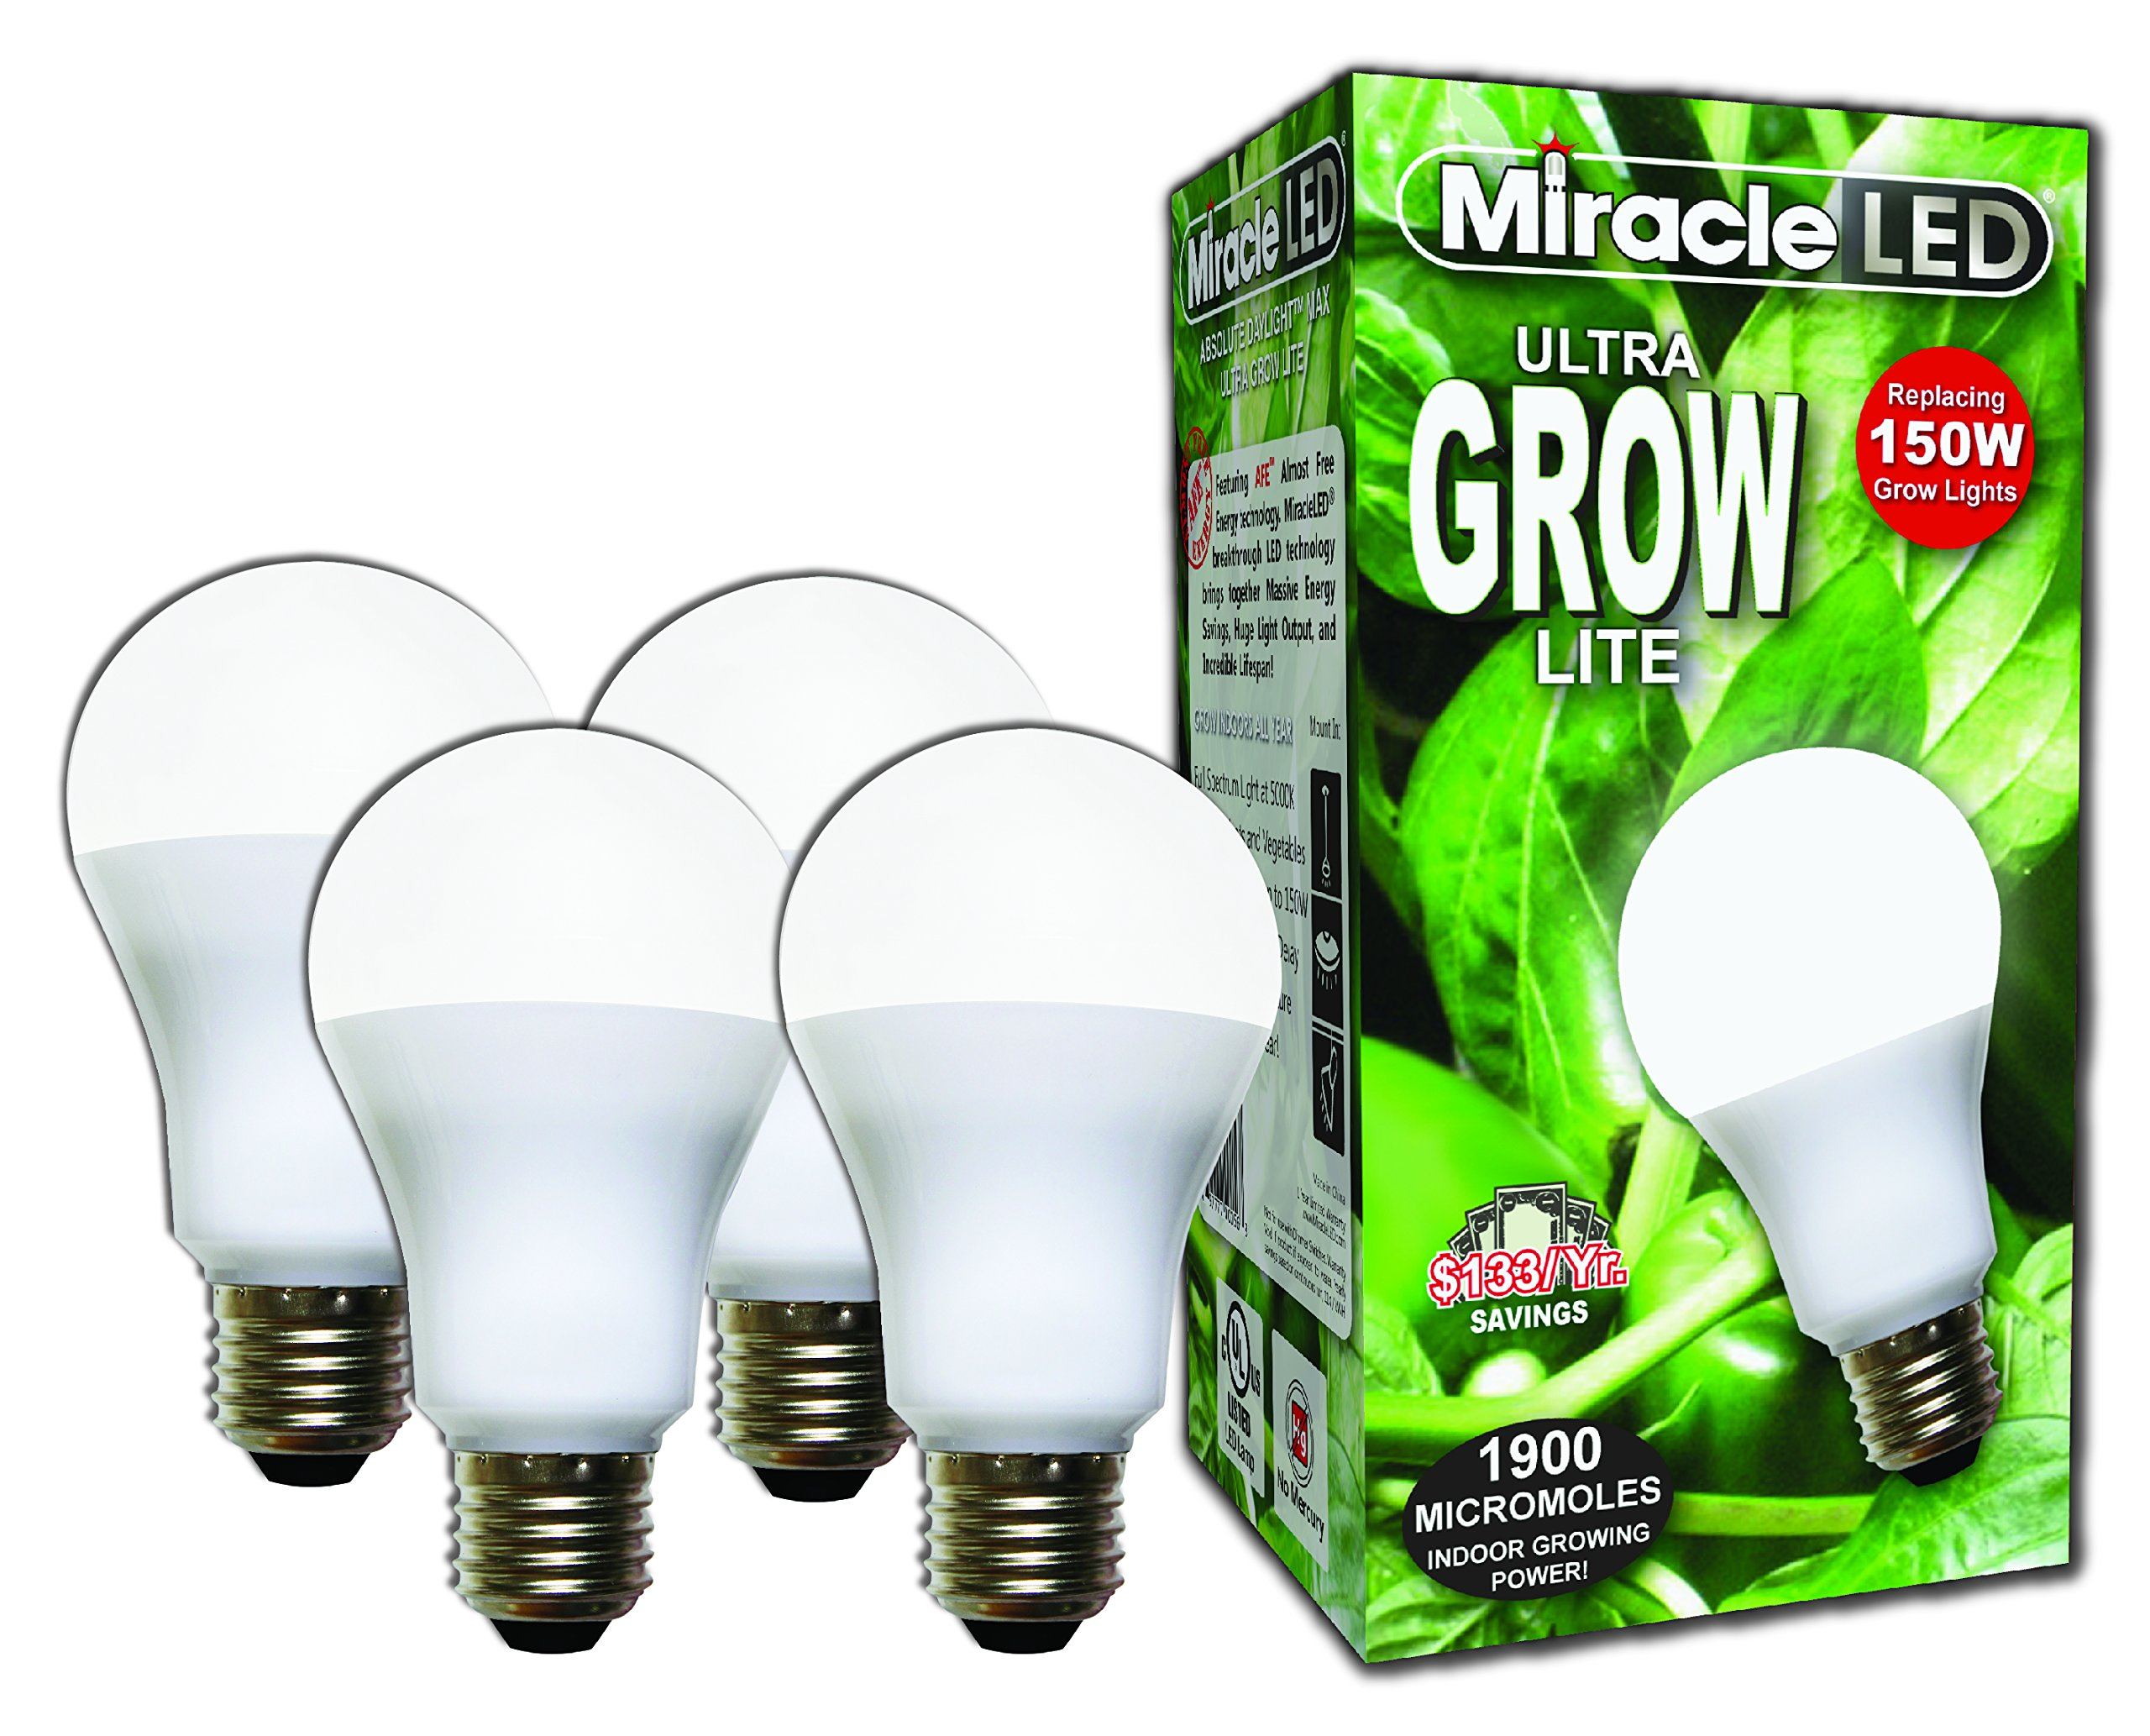 Miracle LED Commercial Hydroponic Ultra Grow Lite - Replaces up to 150W - Daylight White Full Spectrum LED Indoor Plant Growing Light Bulb For DIY Horticulture & Indoor Gardening (604281) 4 Pack by MiracleLED